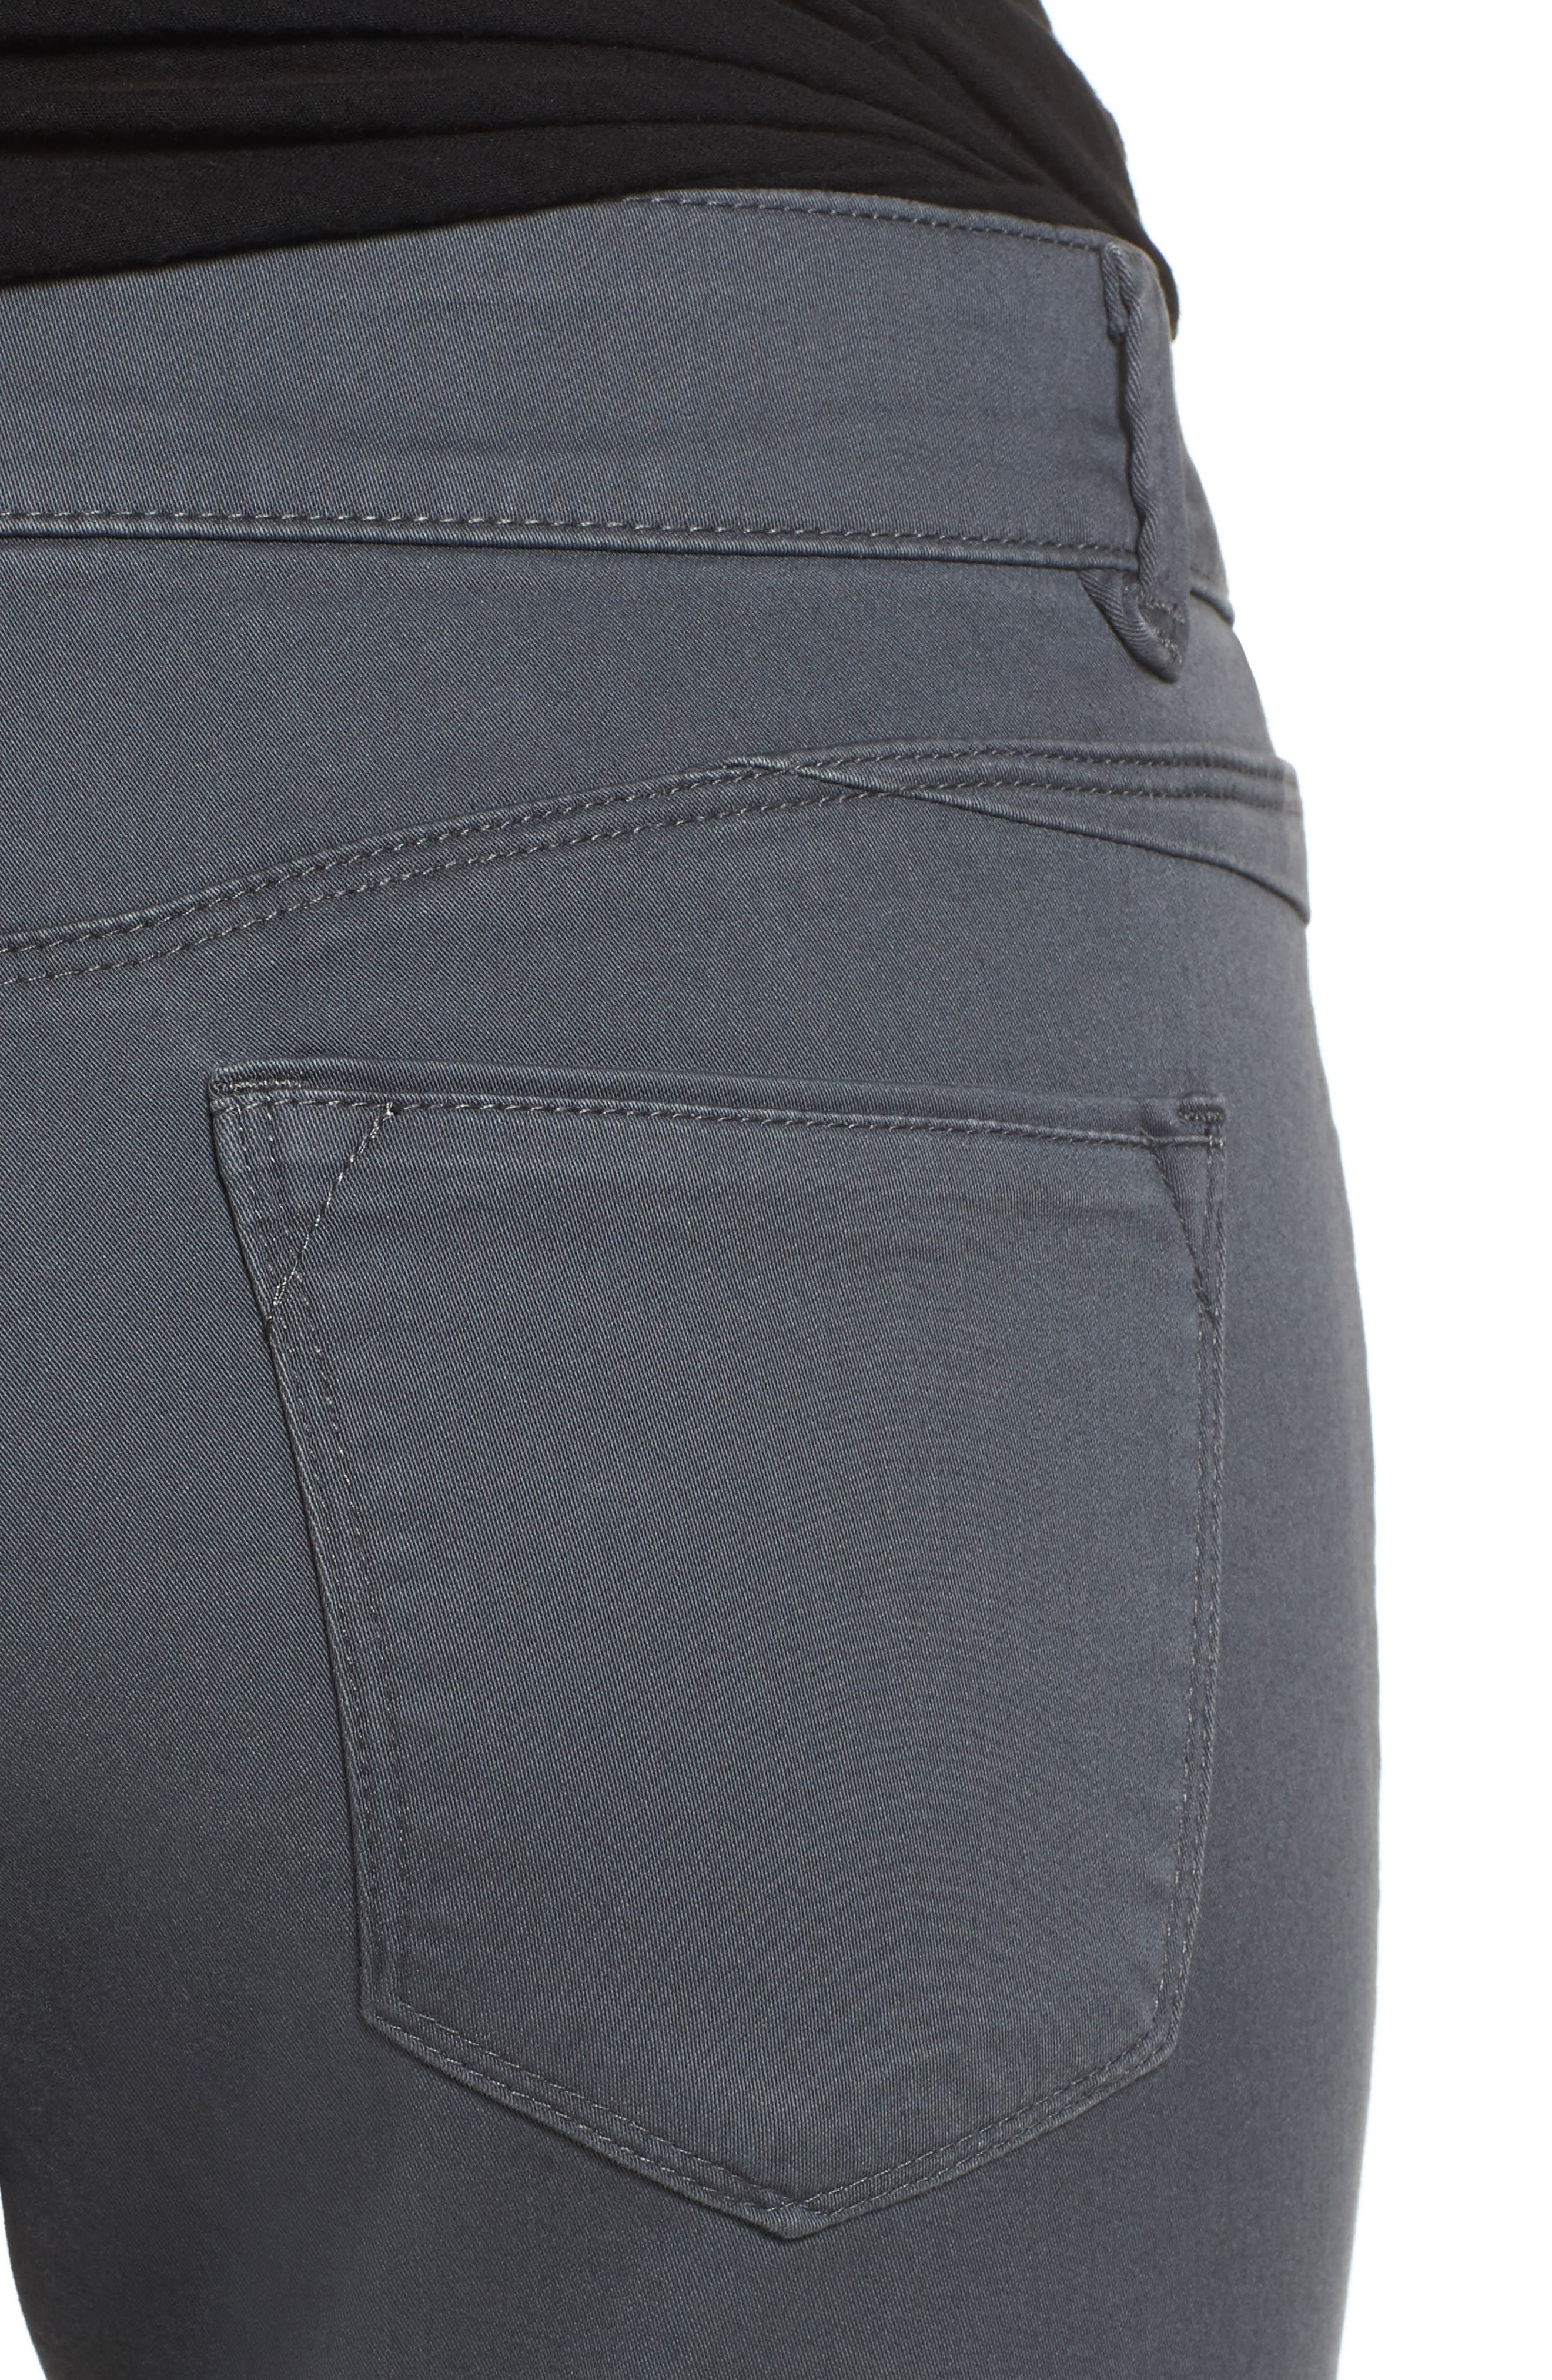 Ab-solution Stretch Twill Skinny Pants,                             Alternate thumbnail 4, color,                             050